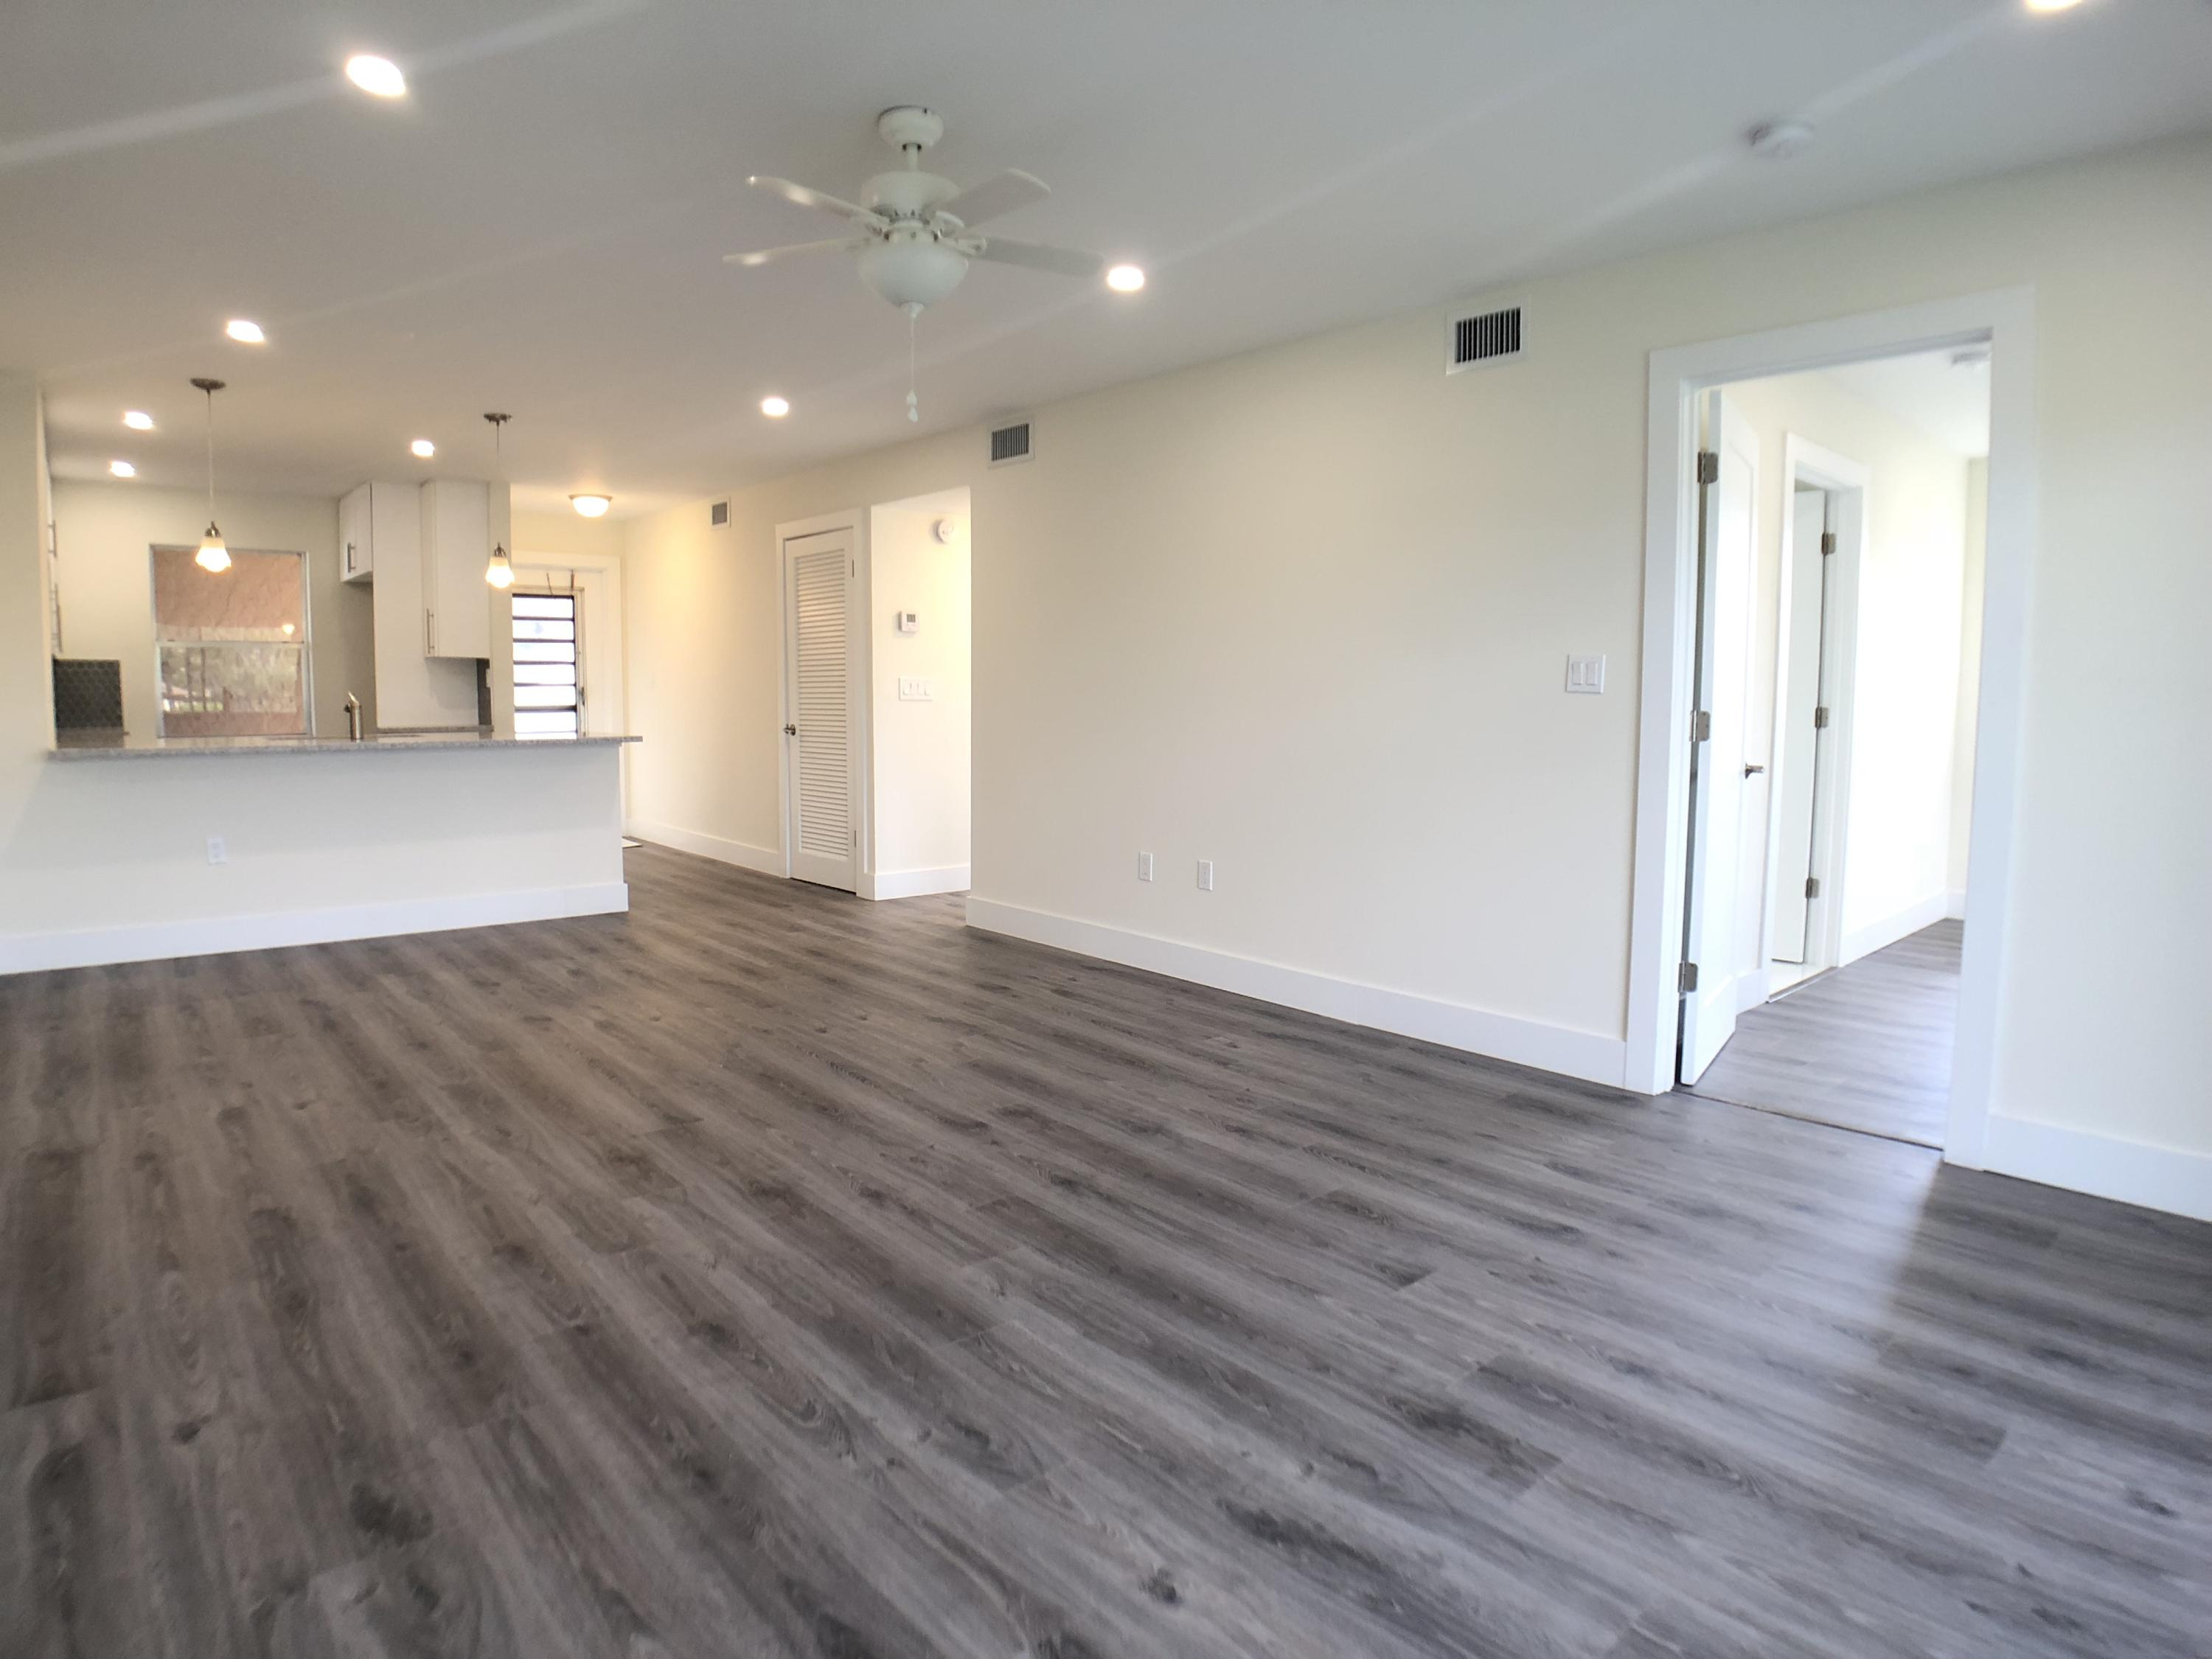 SANDALFOOT SOUTH TWO HOMES FOR SALE